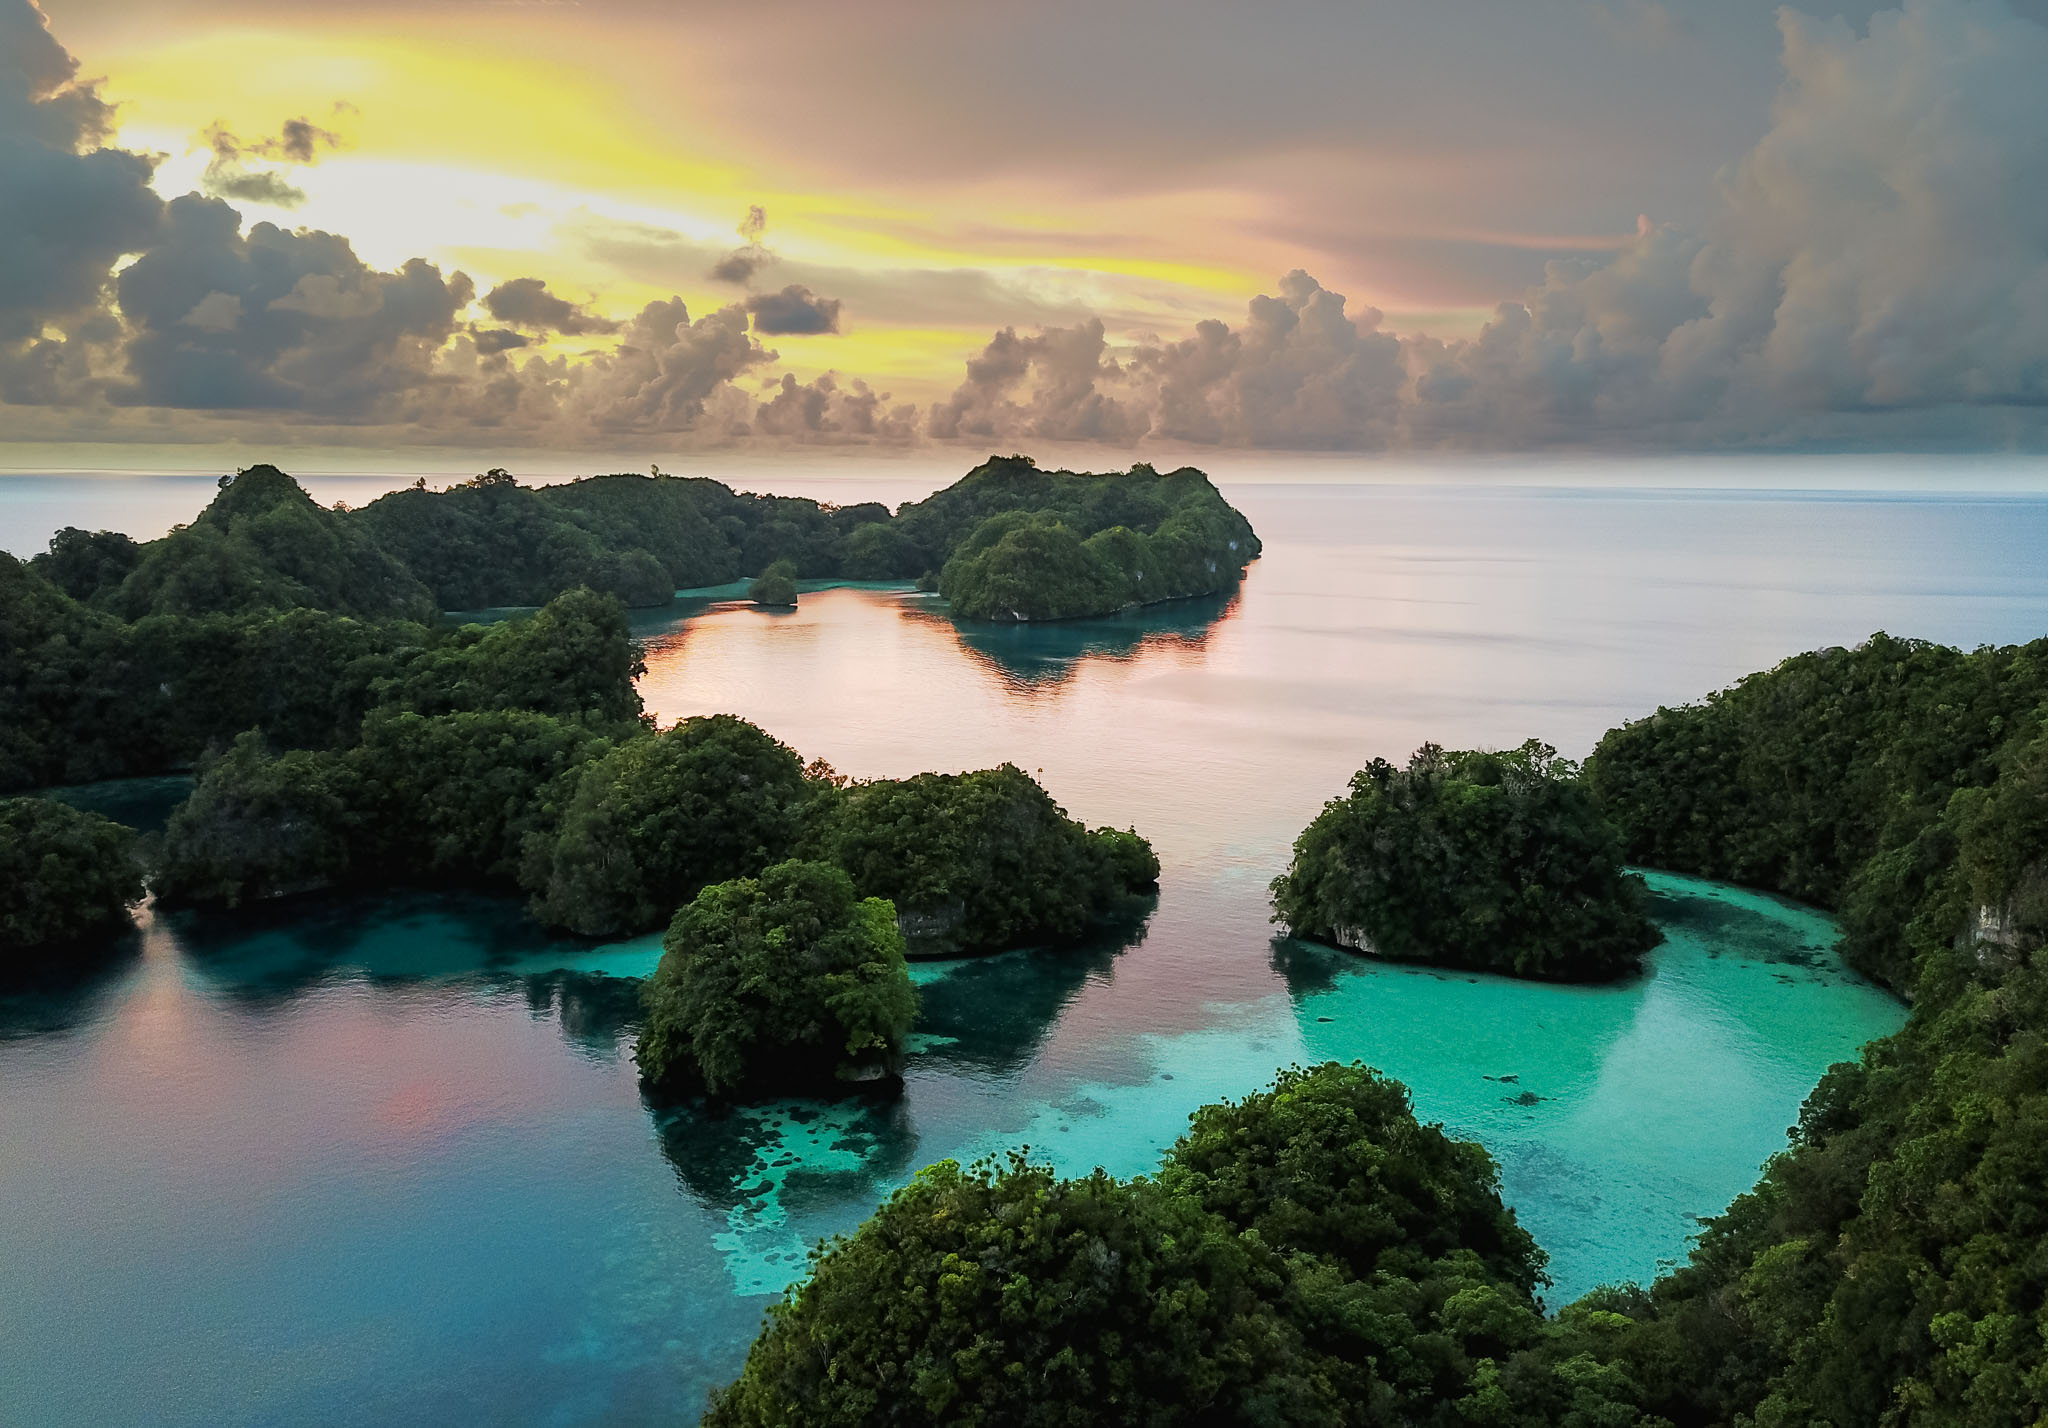 Palau Travel Guide - Beach Travel Destinations |Palau Vacation